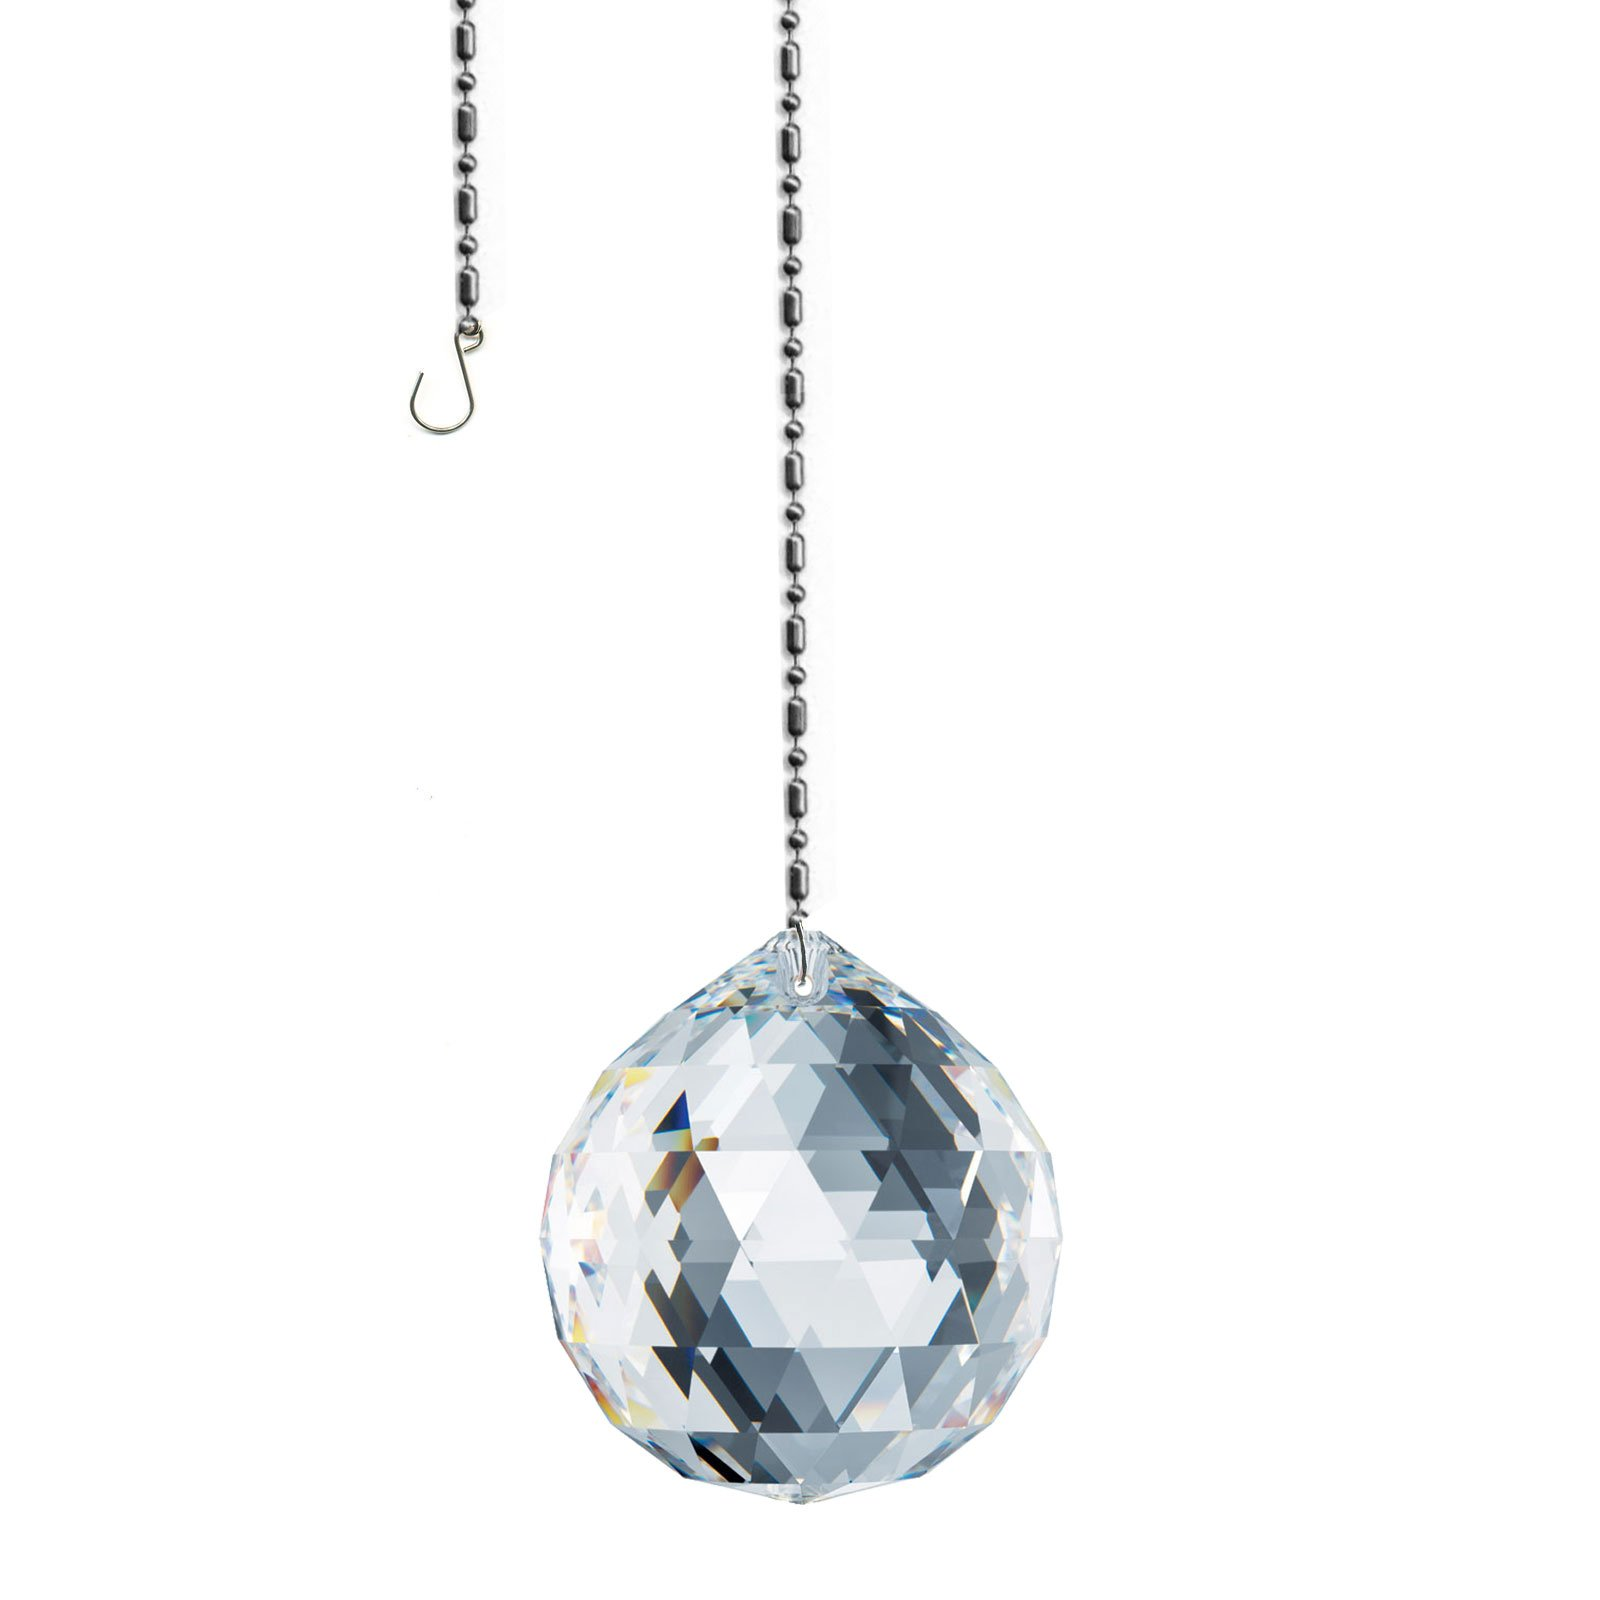 Swarovski Spectra Crystal 40mm Clear Lead Free Feng Shui Crystal Ball Sun Catcher, Austrian Crystal with Certificate